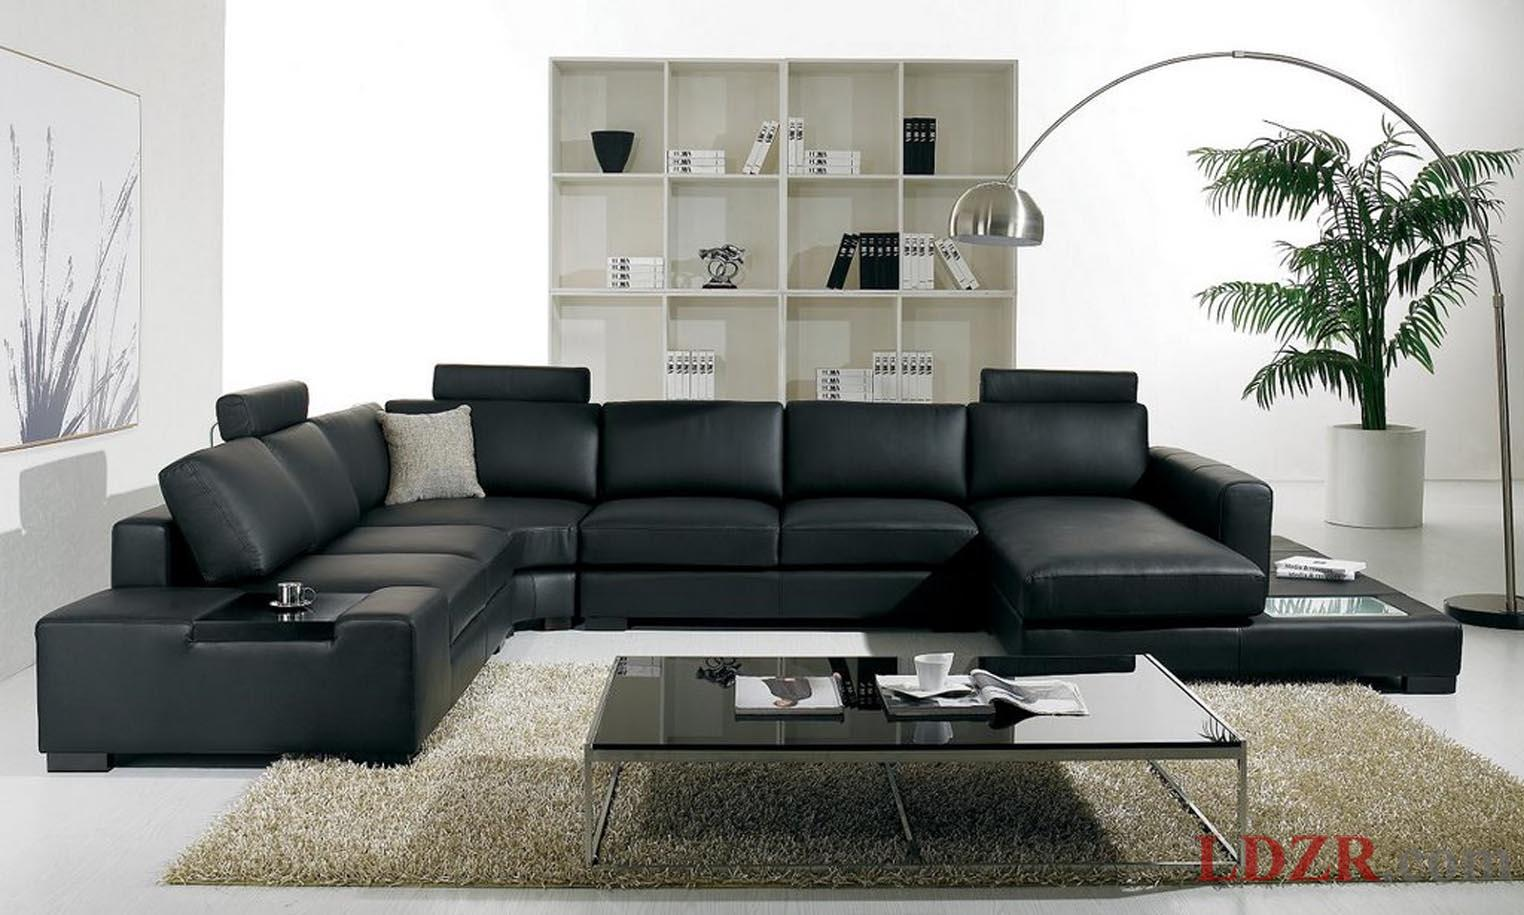 sofa for living room livingroom:home and living lovely room with black leather sofa interior  design brown MIKVNQT